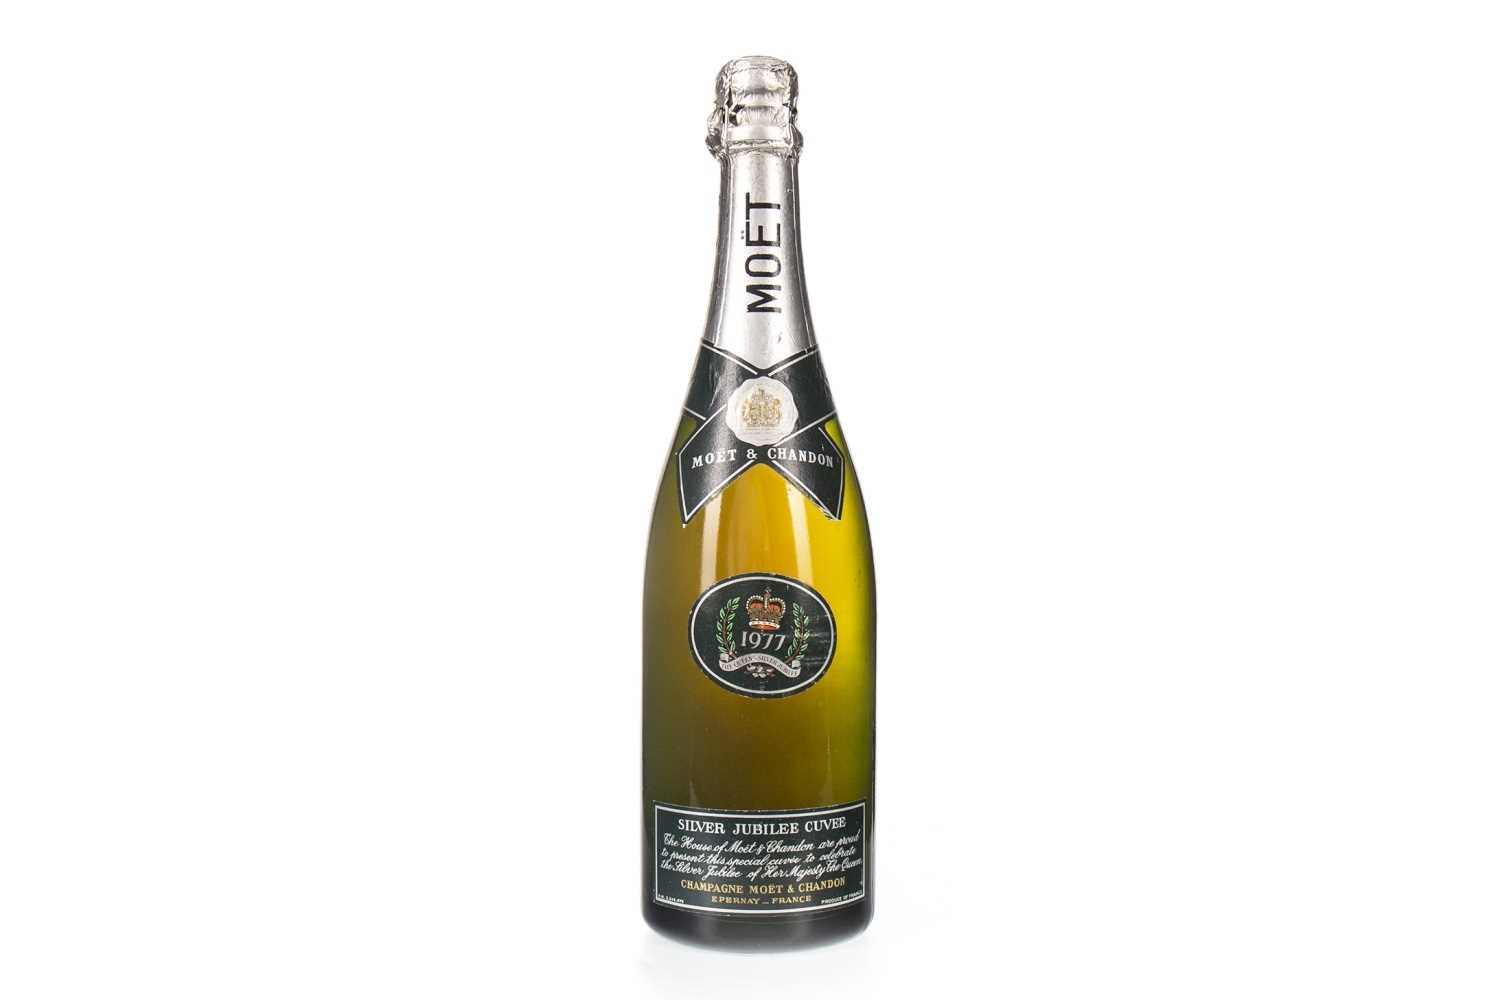 Lot 2006-MOET & CHANDON 1977 SILVER JUBILEE